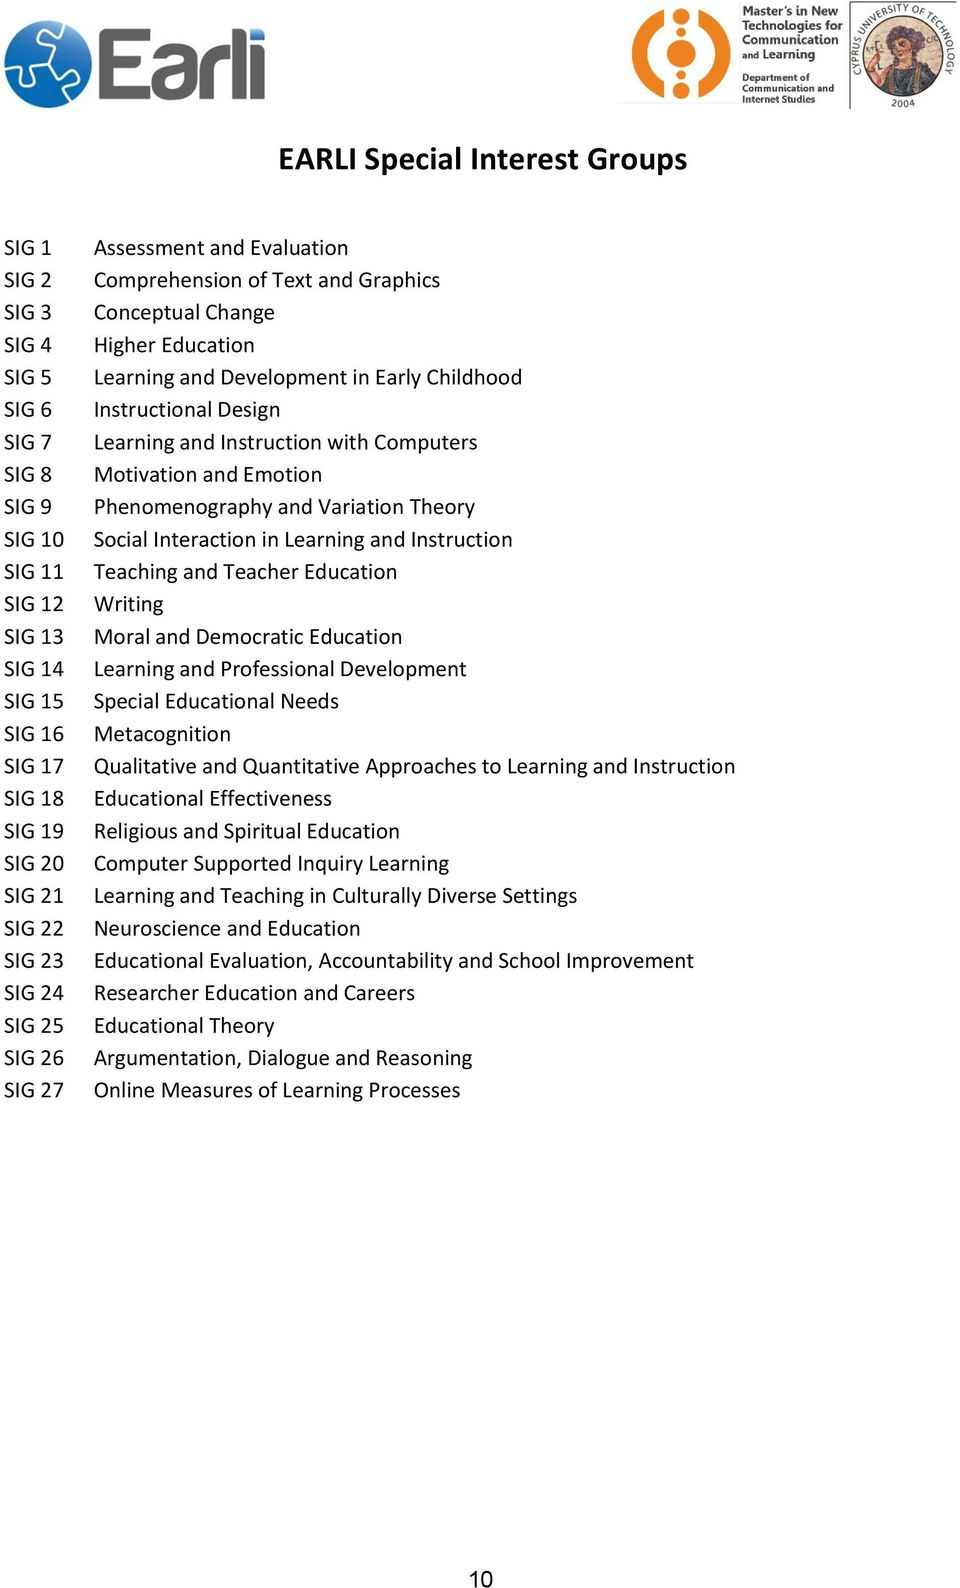 with Computers Motivation and Emotion Phenomenography and Variation Theory Social Interaction in Learning and Instruction Teaching and Teacher Education Writing Moral and Democratic Education